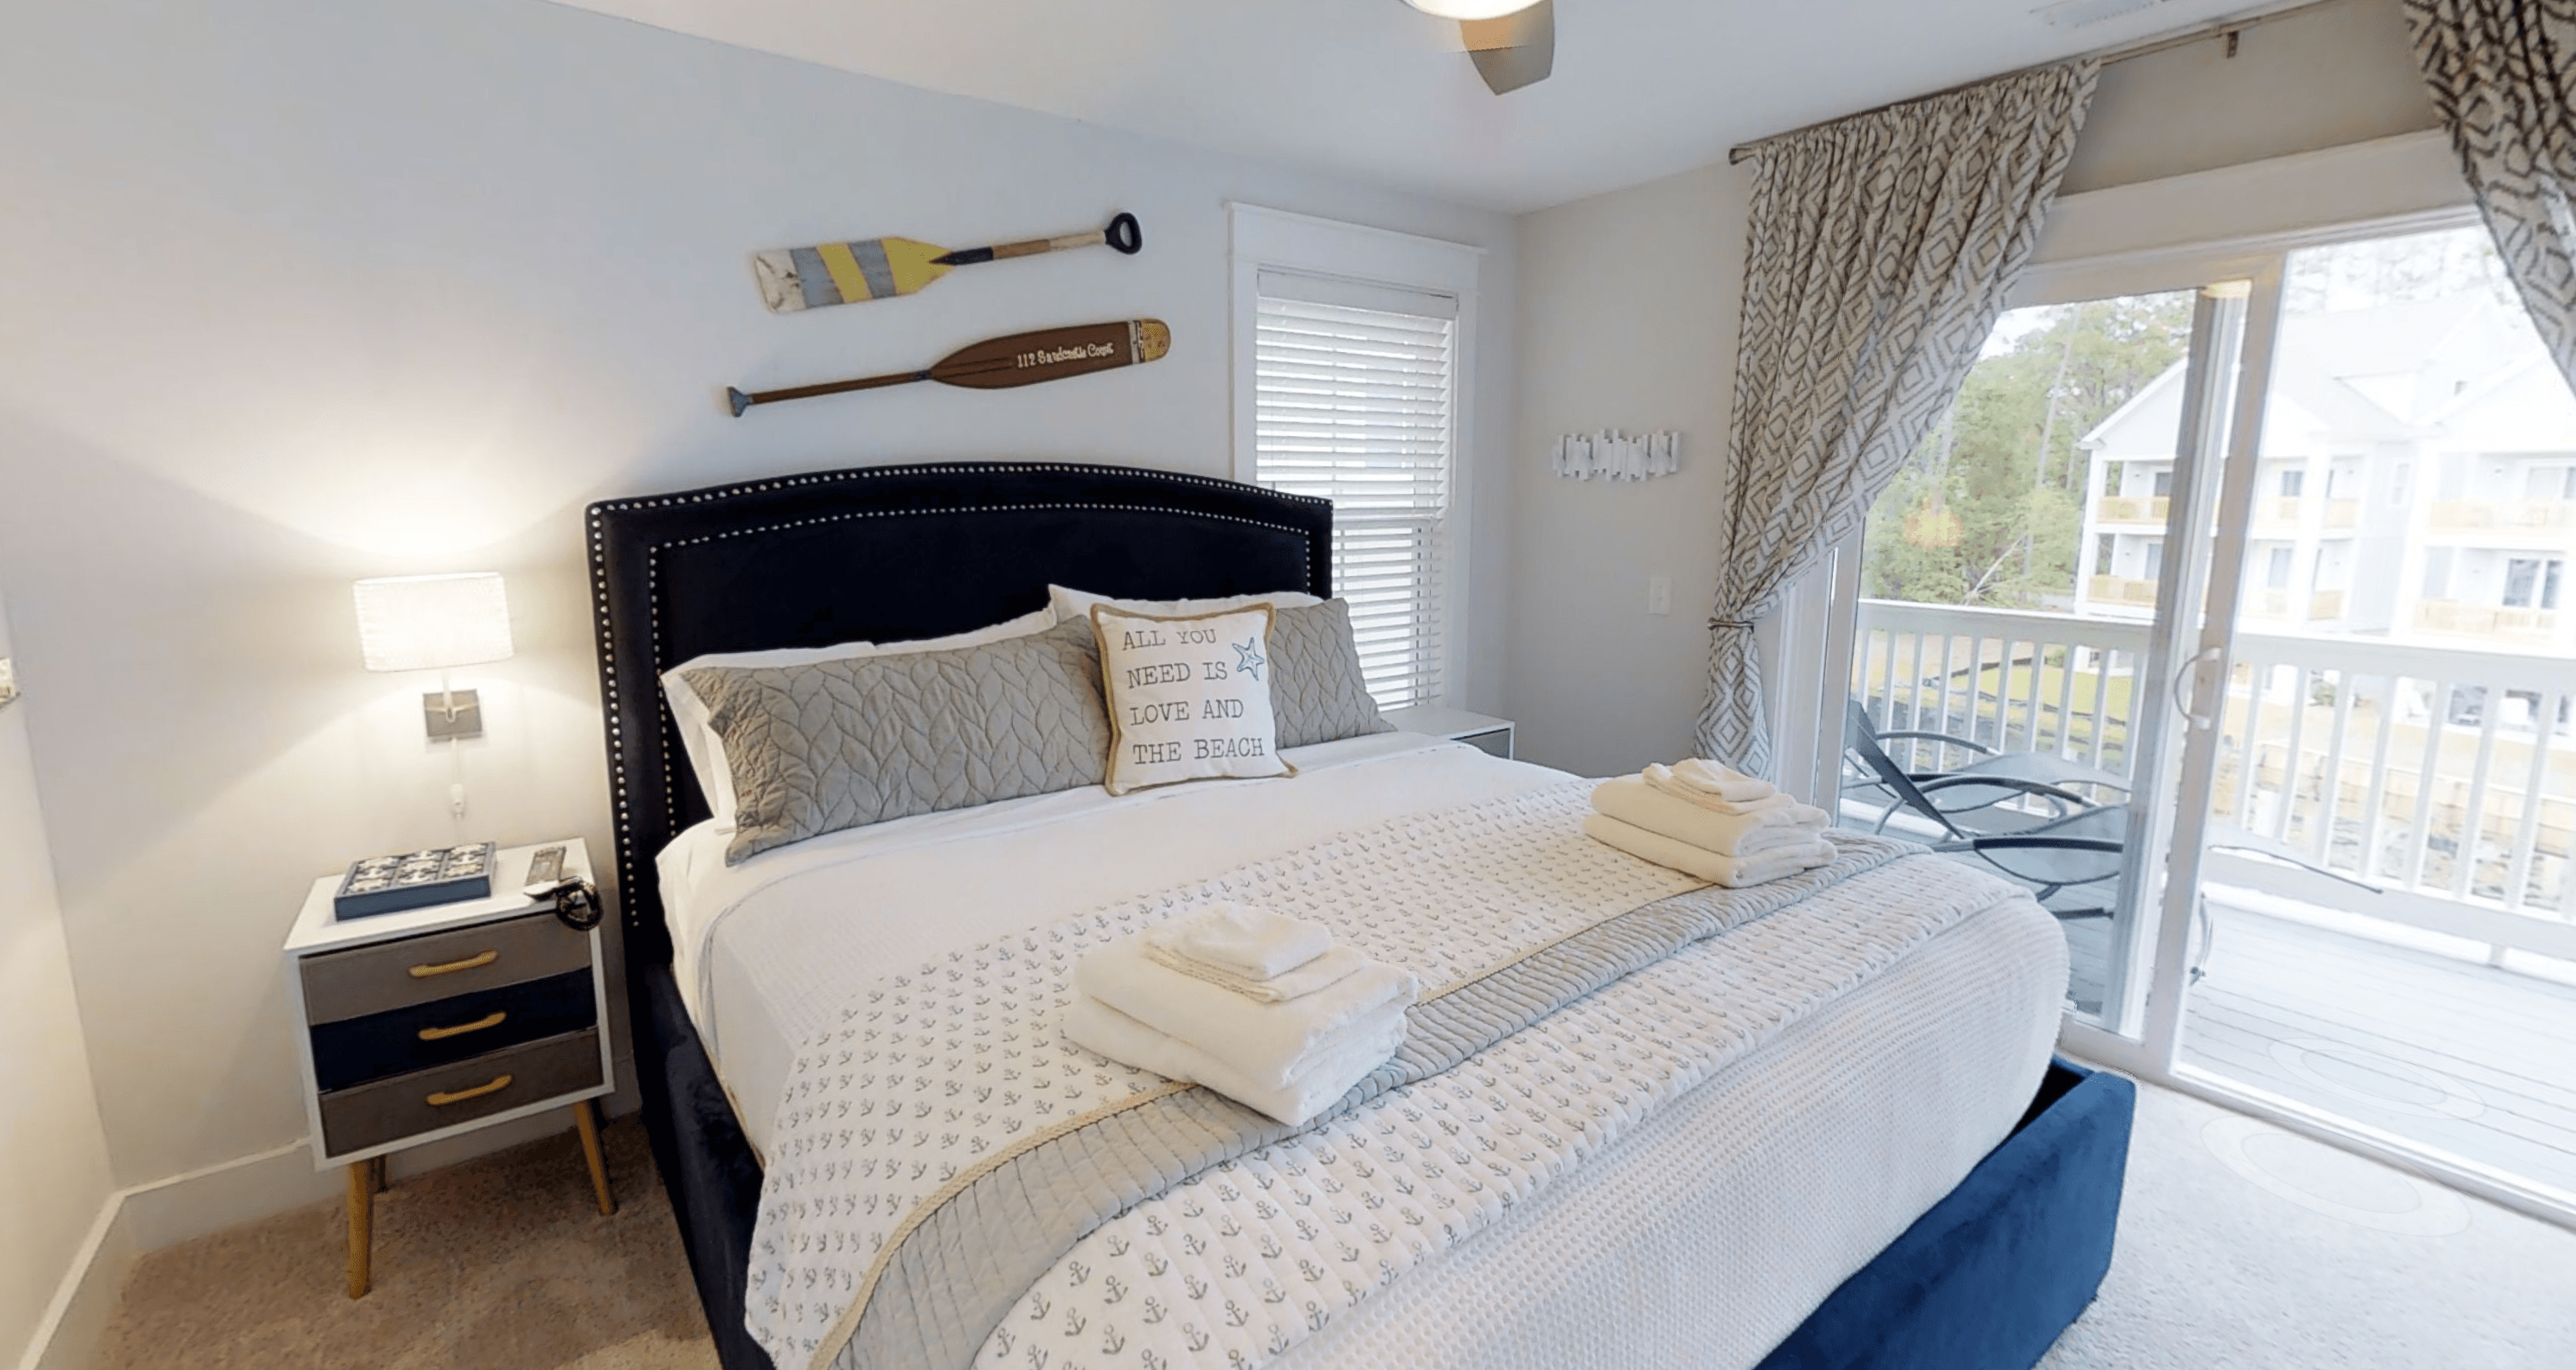 Bedroom featured in The Buxton By Village Park Homes in Hilton Head, SC